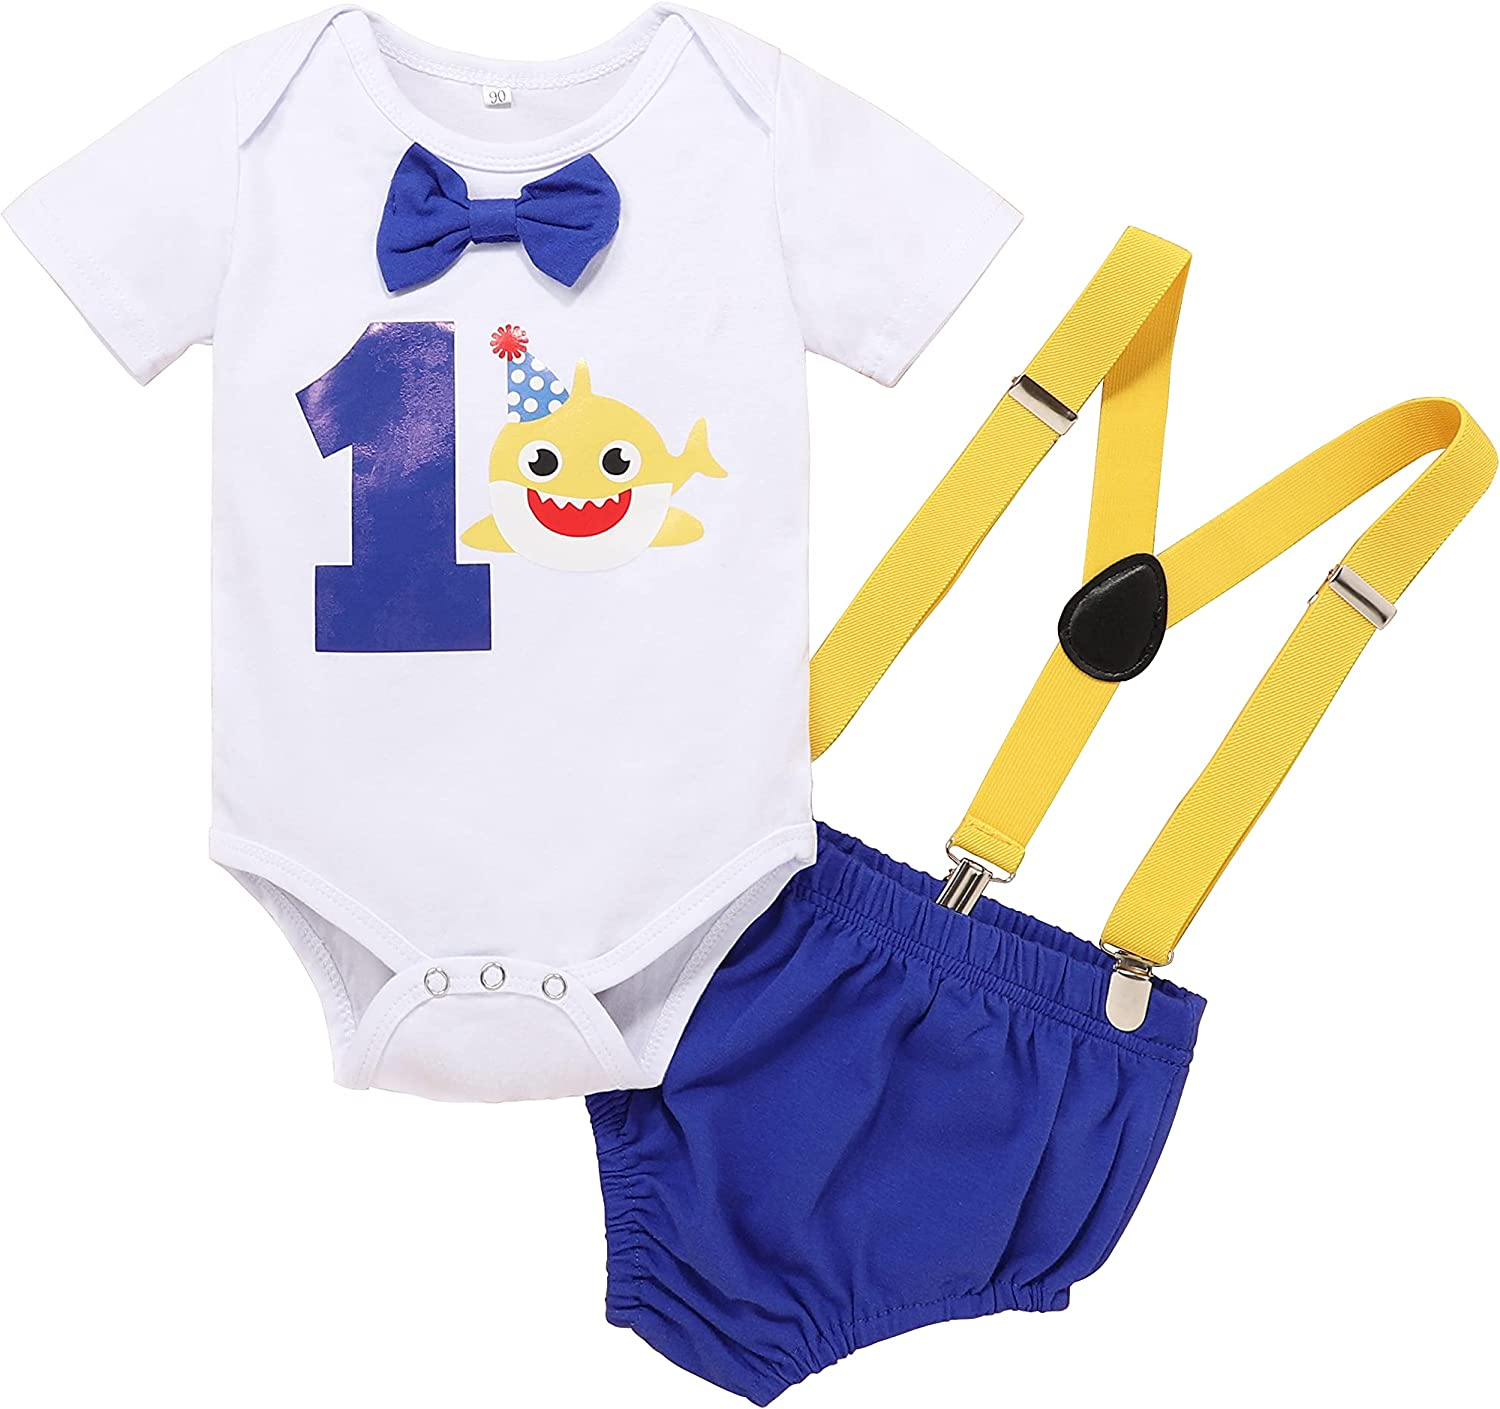 AGQT Baby Boys 1st Birthday Clothes 3PCS Y Back Suspenders Bow Tie Size 9-18 Months